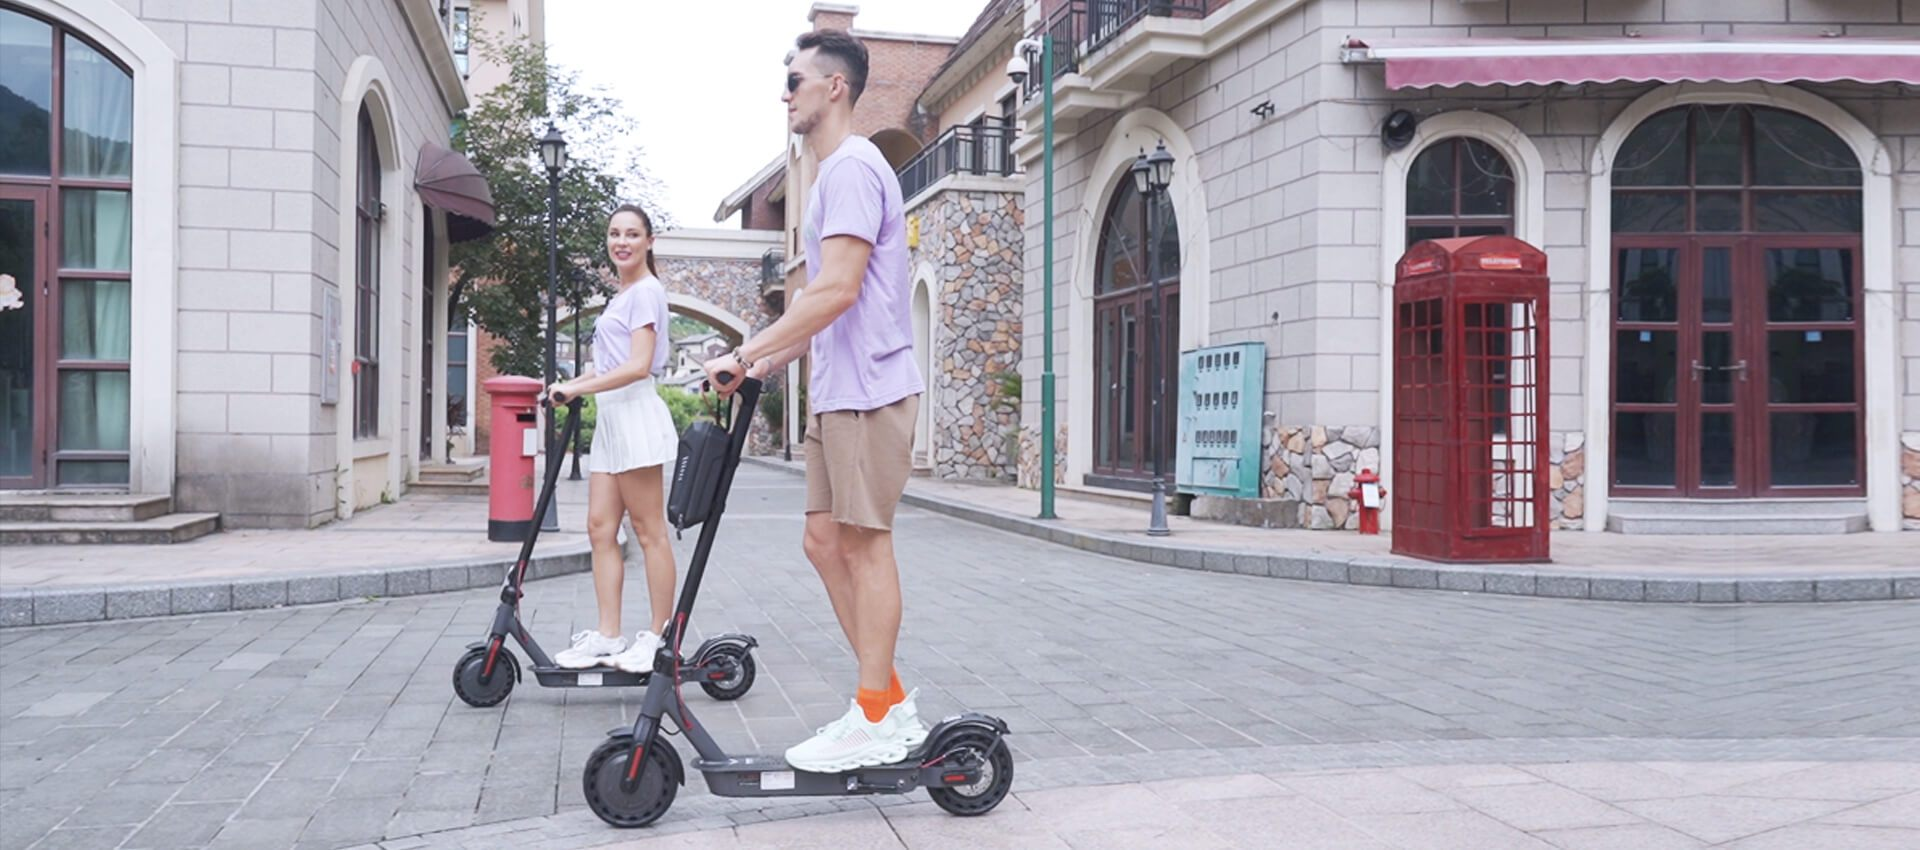 Hiboy S2 Pro commuting escooter